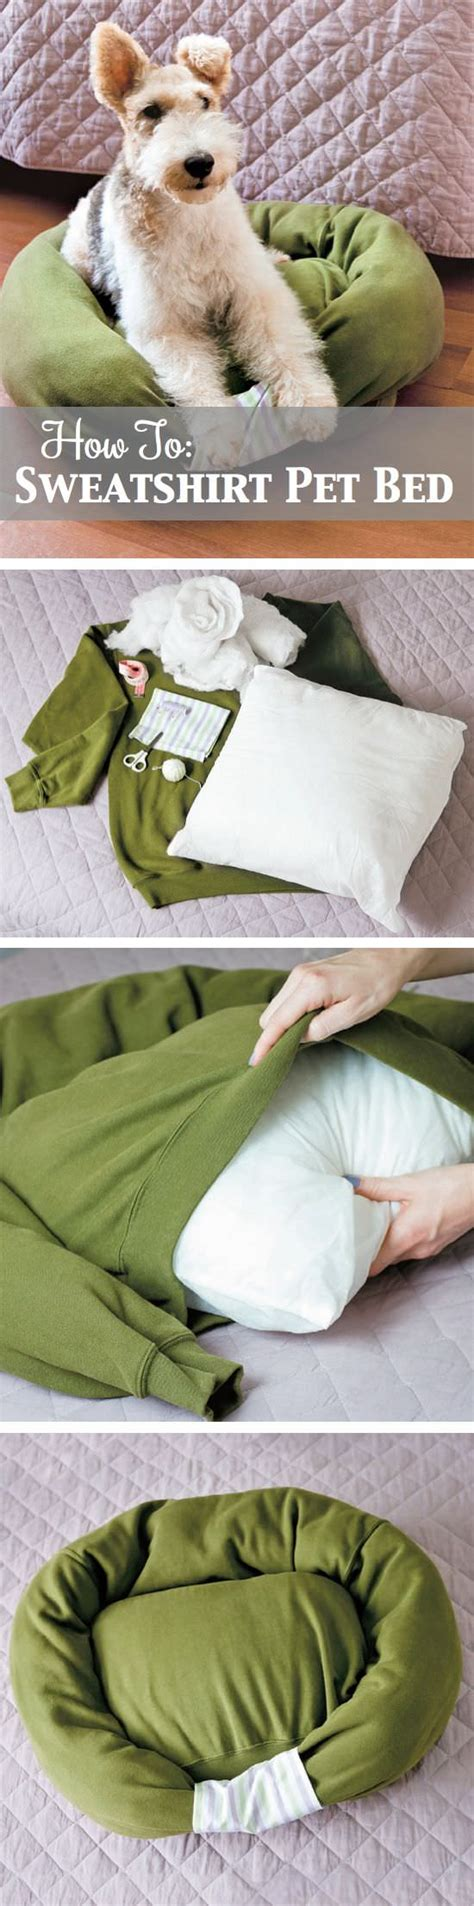 diy sweatshirt pet bed sniff design studio